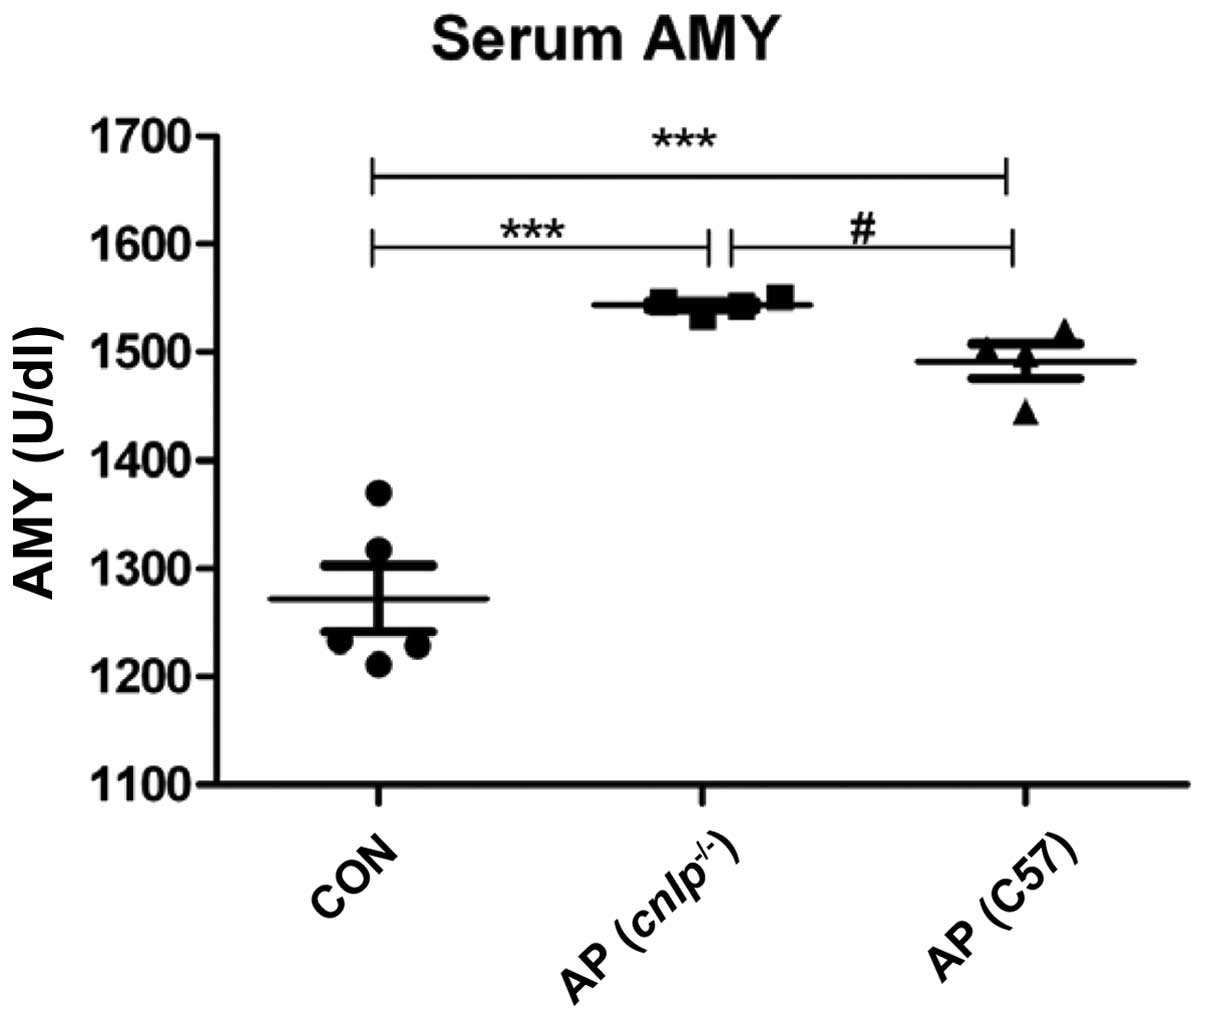 hight resolution of figure 1 effects of cathelicidin related antimicrobial peptide deficiency cnlp on serum amylase amy levels data are presented as the mean